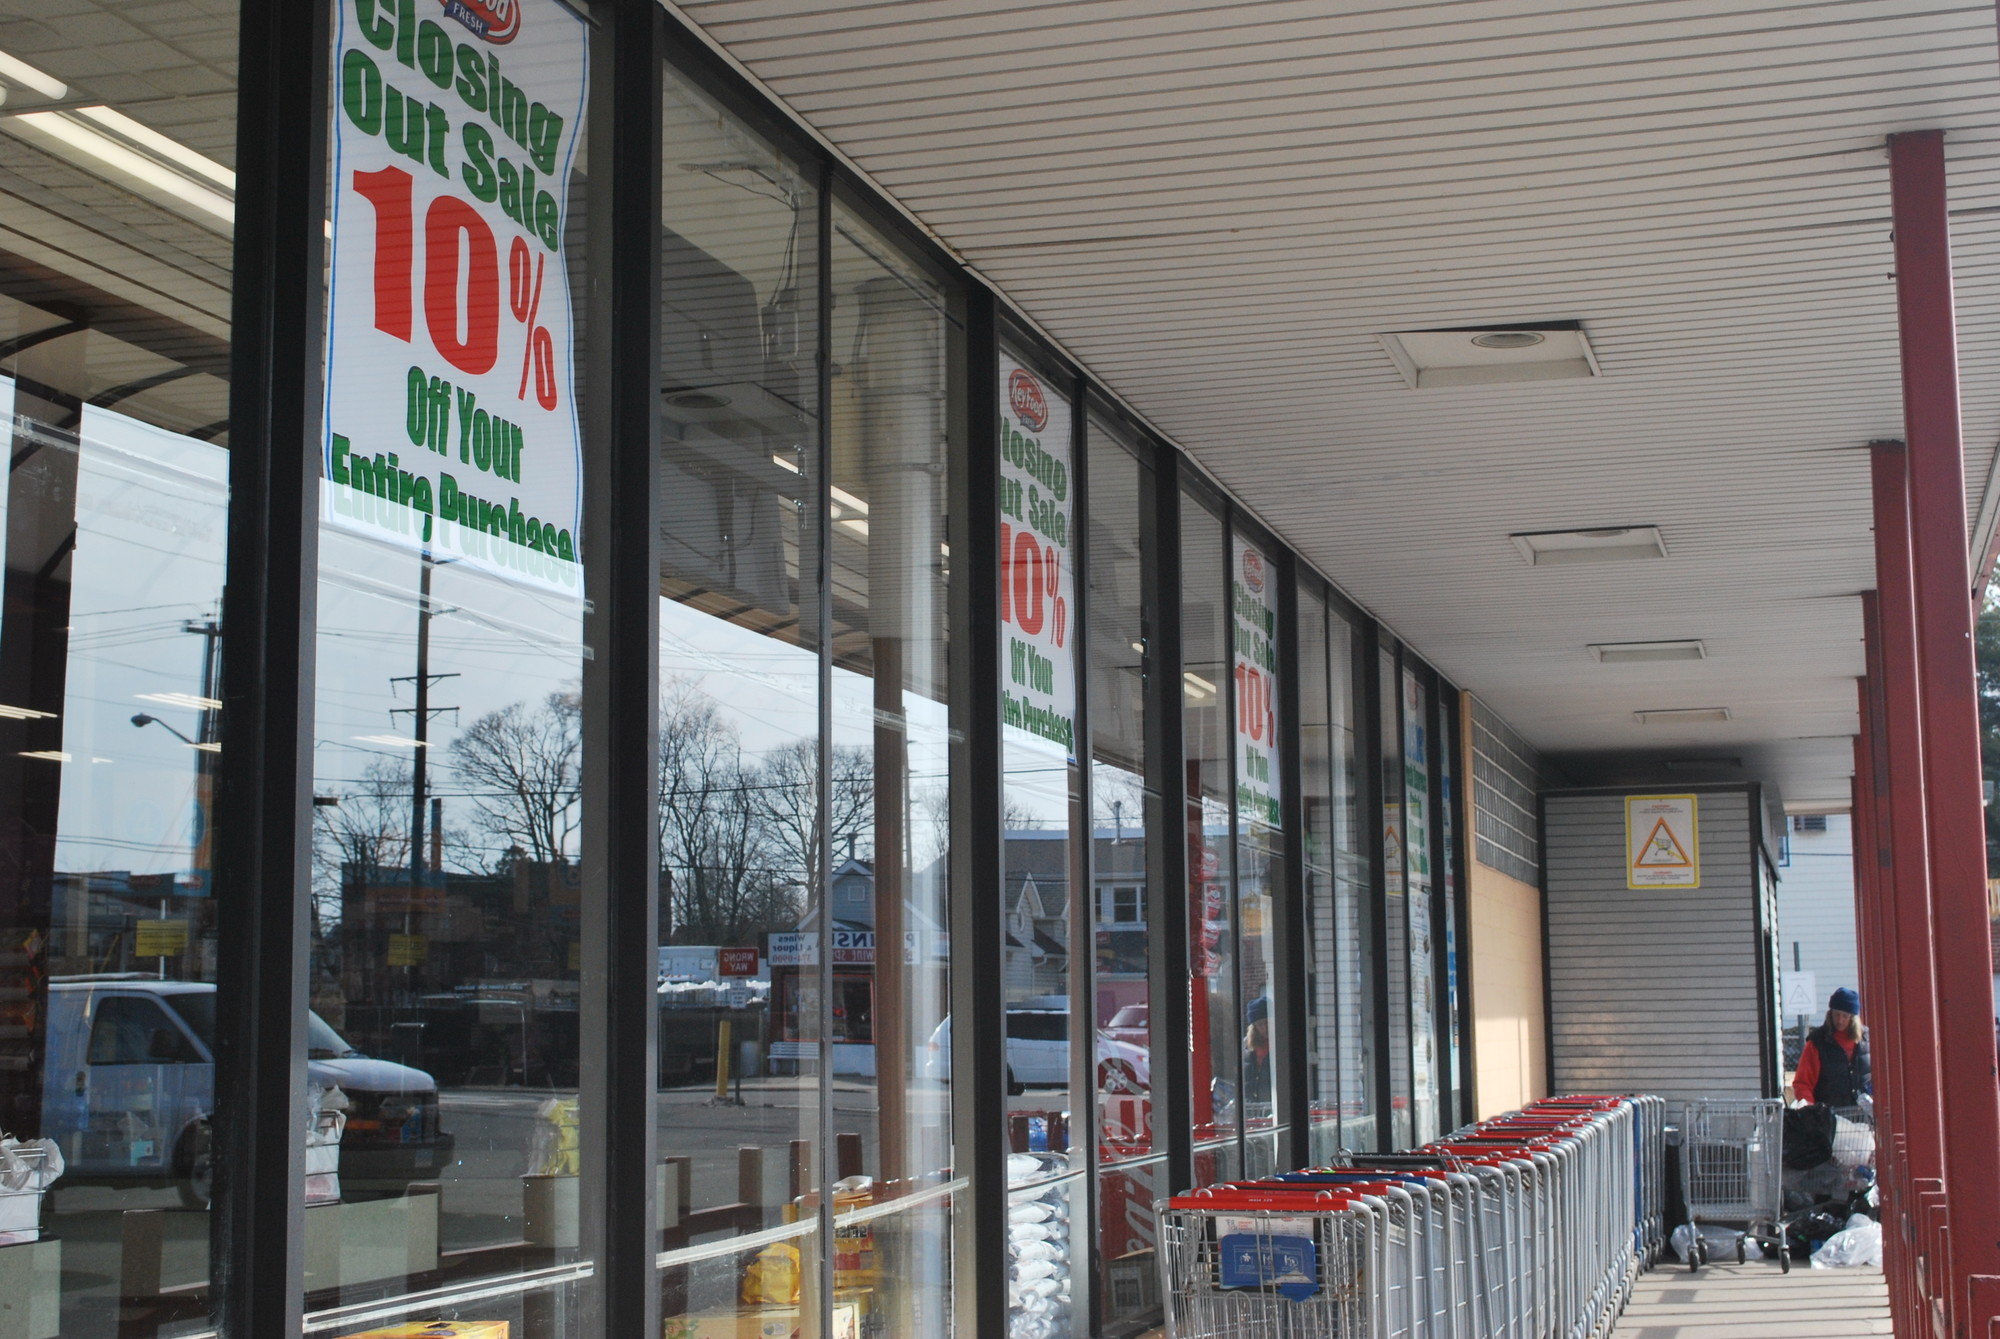 The Key Food supermarket in Woodmere is closing, and it is expected that Gourmet Glatt Emporium, an all-kosher food store, will open in the vacated space.